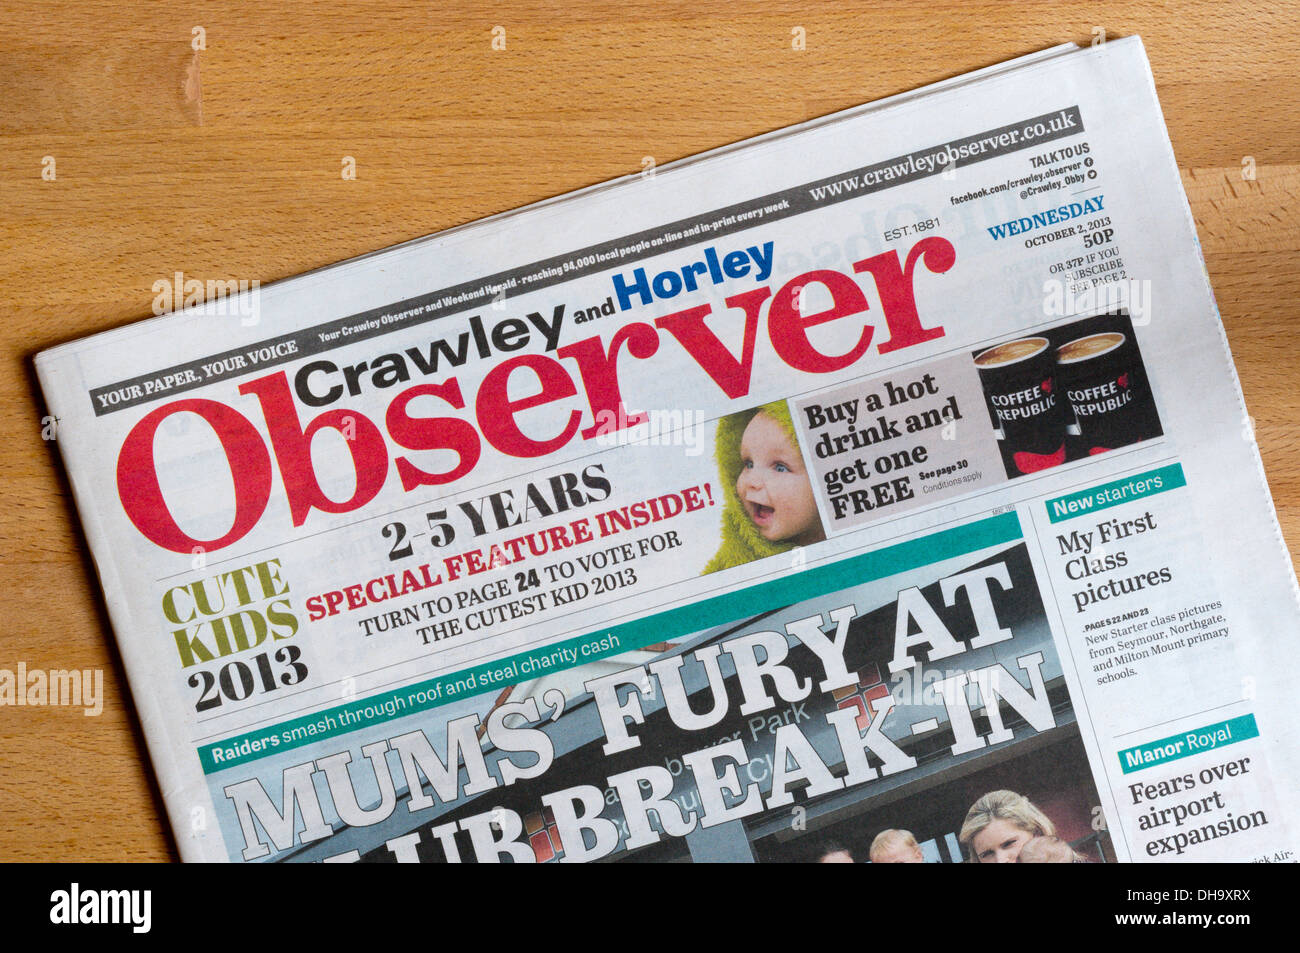 The front page of the Crawley and Horley Observer local newspaper. - Stock Image